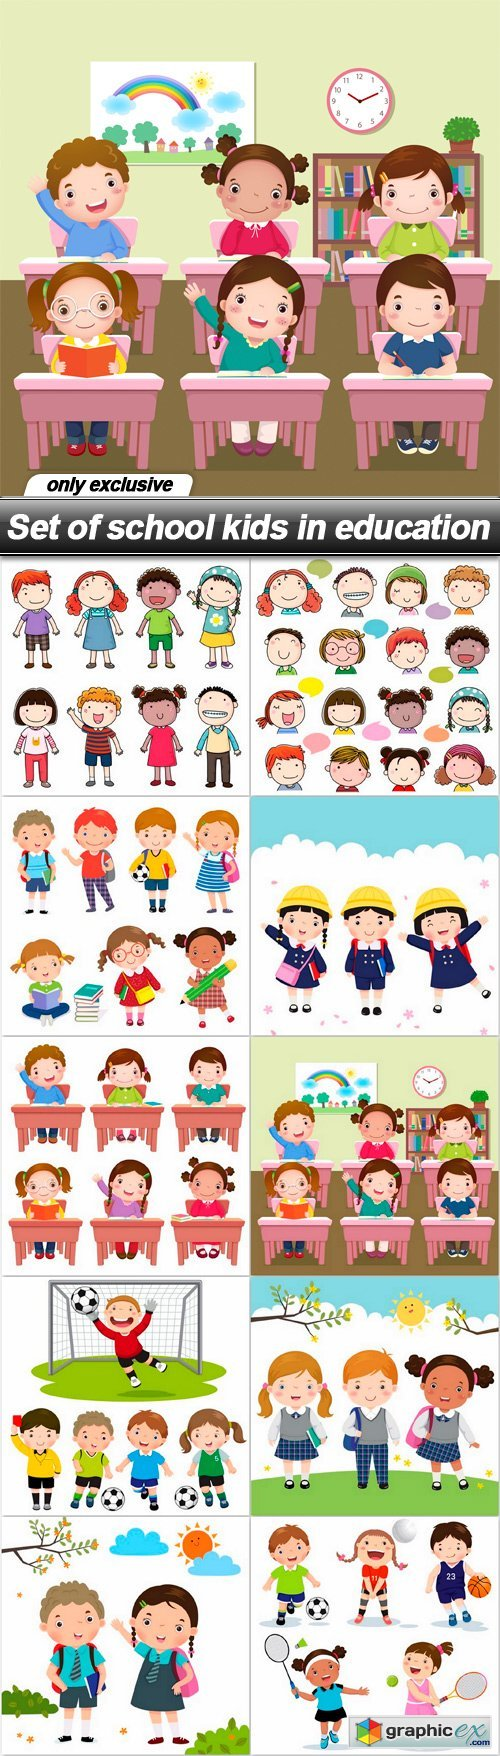 Set of school kids in education - 10 EPS